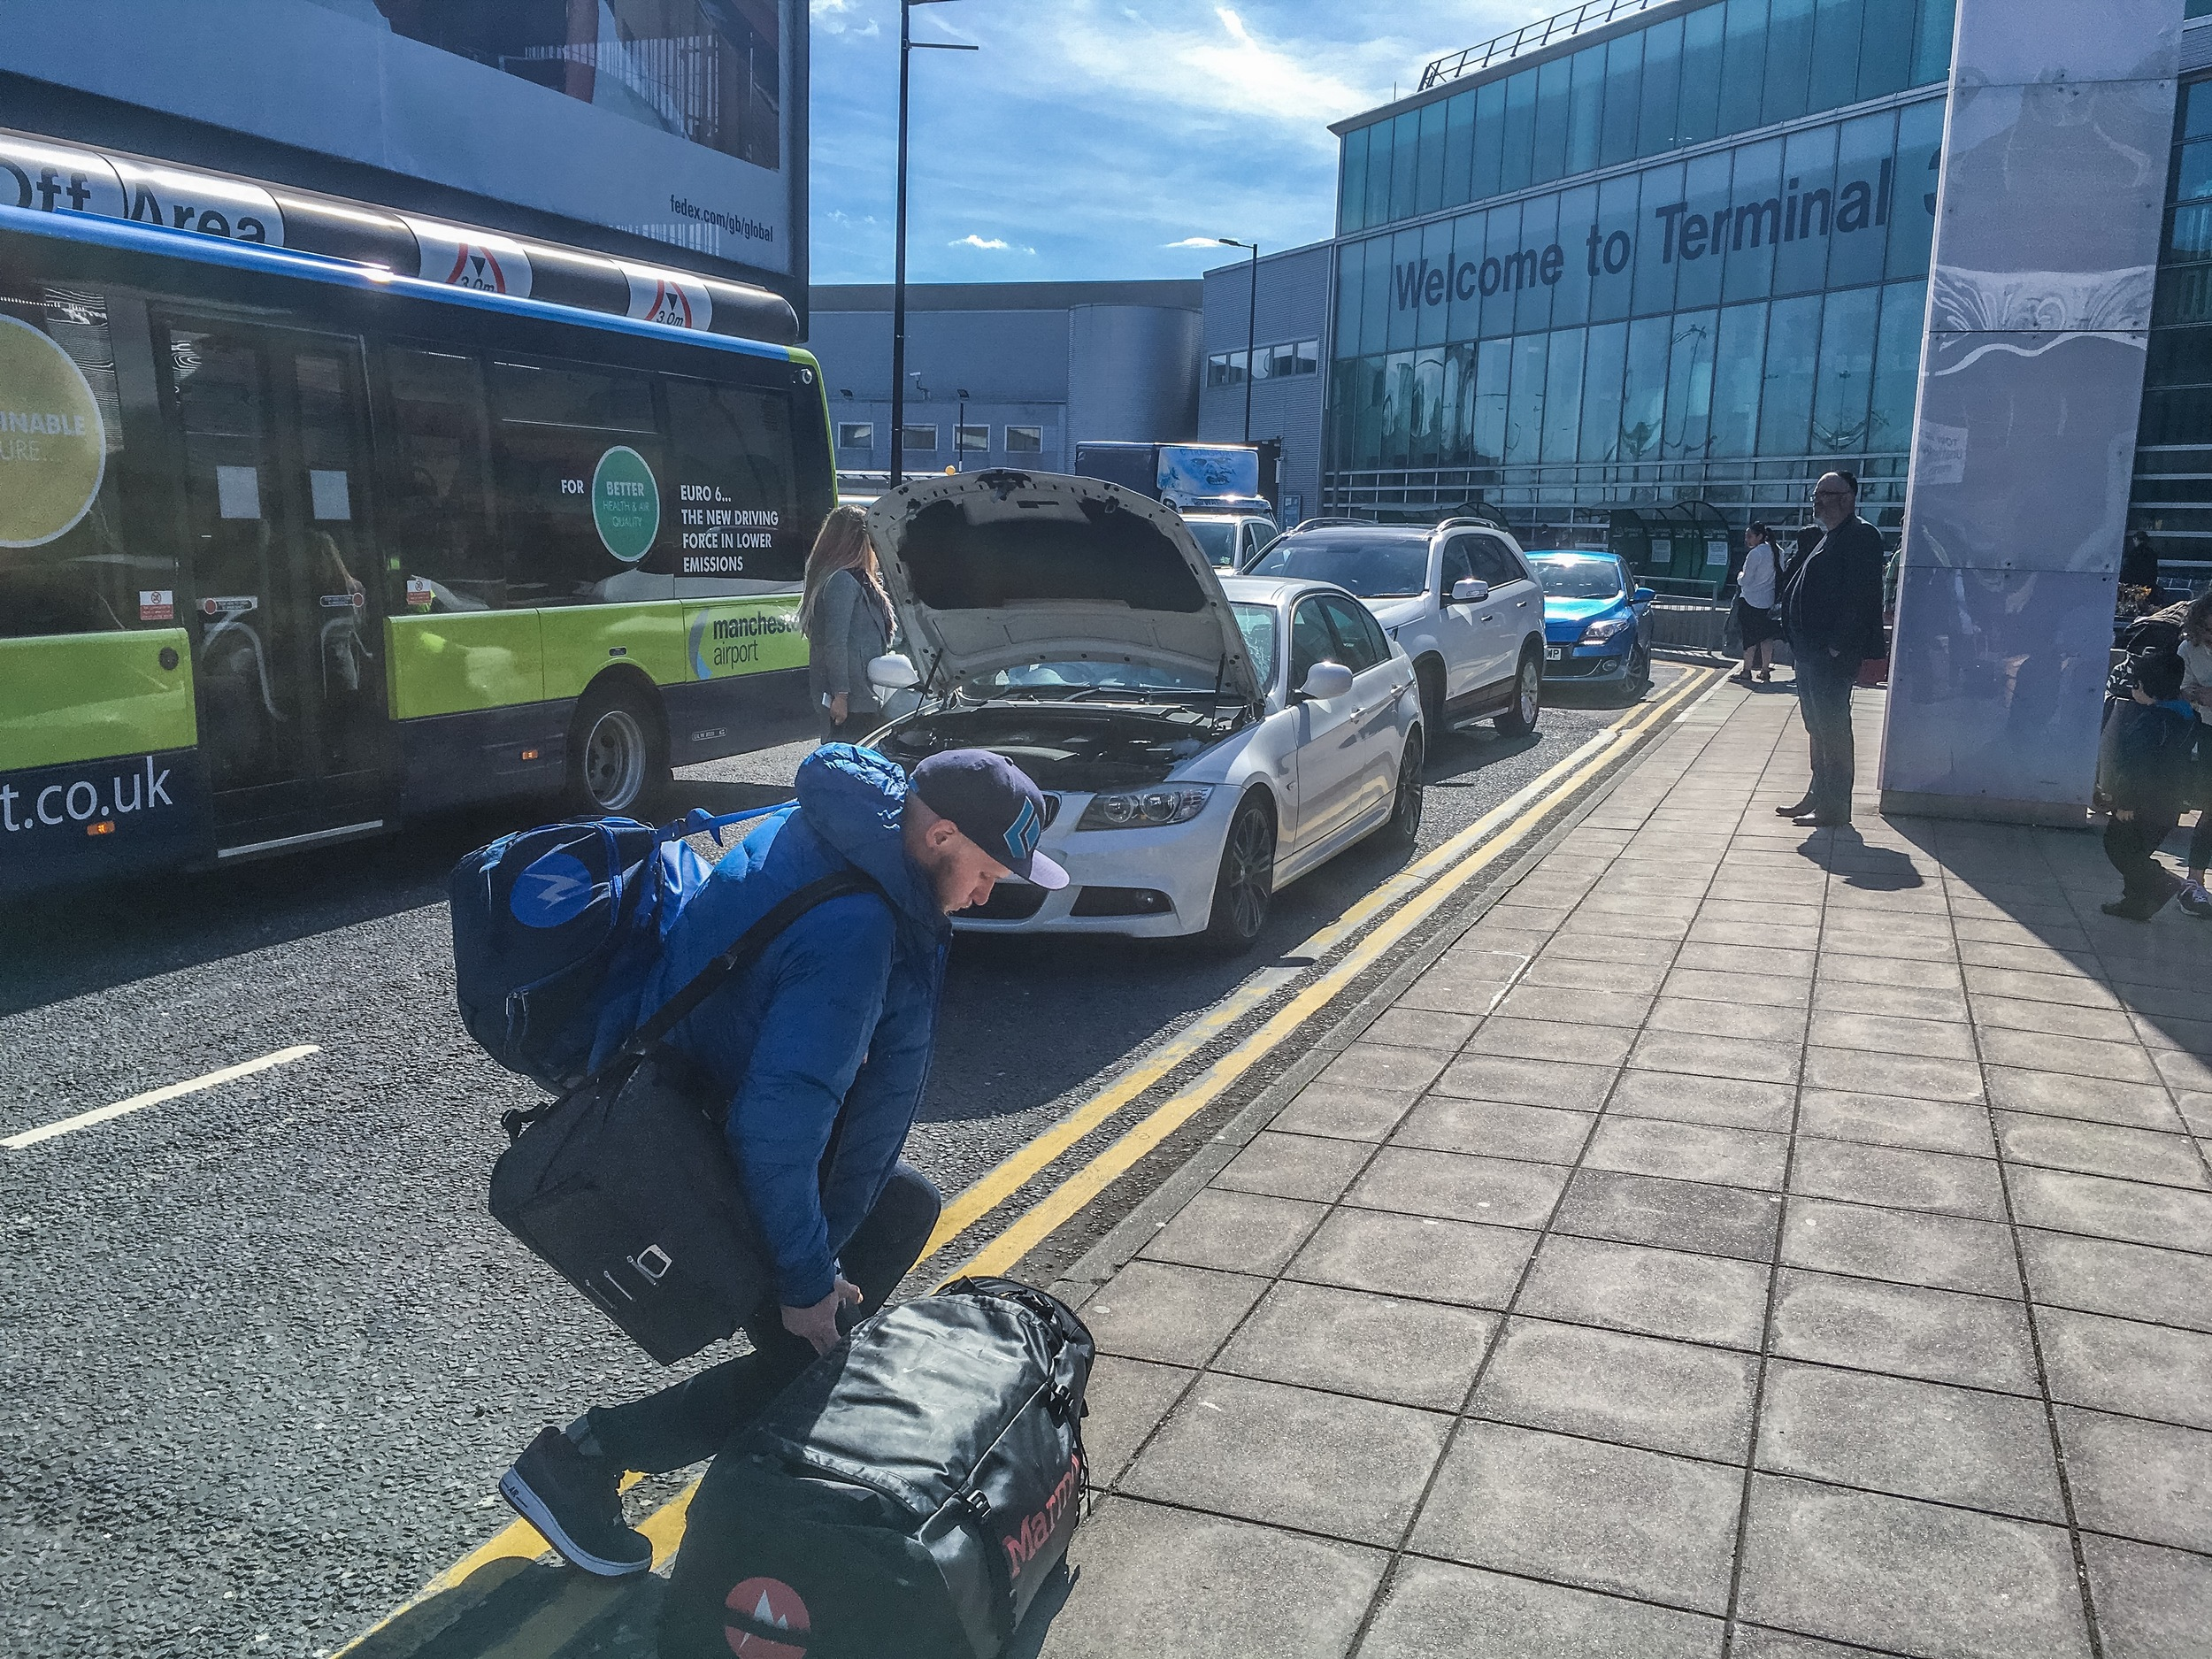 On tour. Manchester Airport for the ?th time this year.  In tow:x2 big duffles full of camera + climbing gear,x1 EDM that doesn't leave my side //  pic: L Lonsdale collection